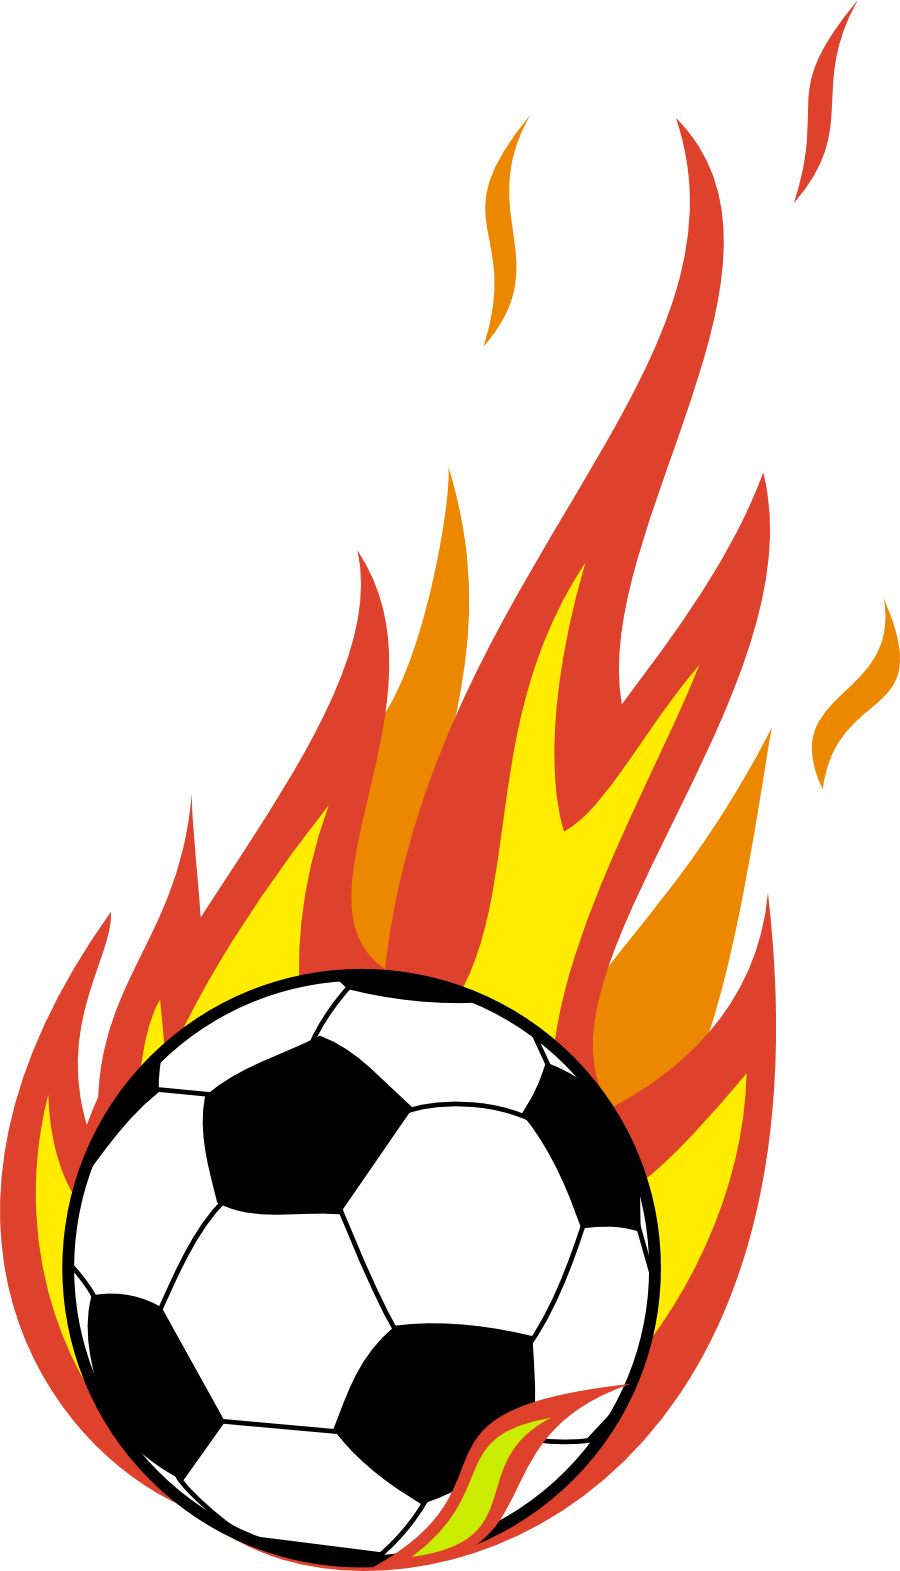 900x1571 Flaming Soccer Ball Clipart